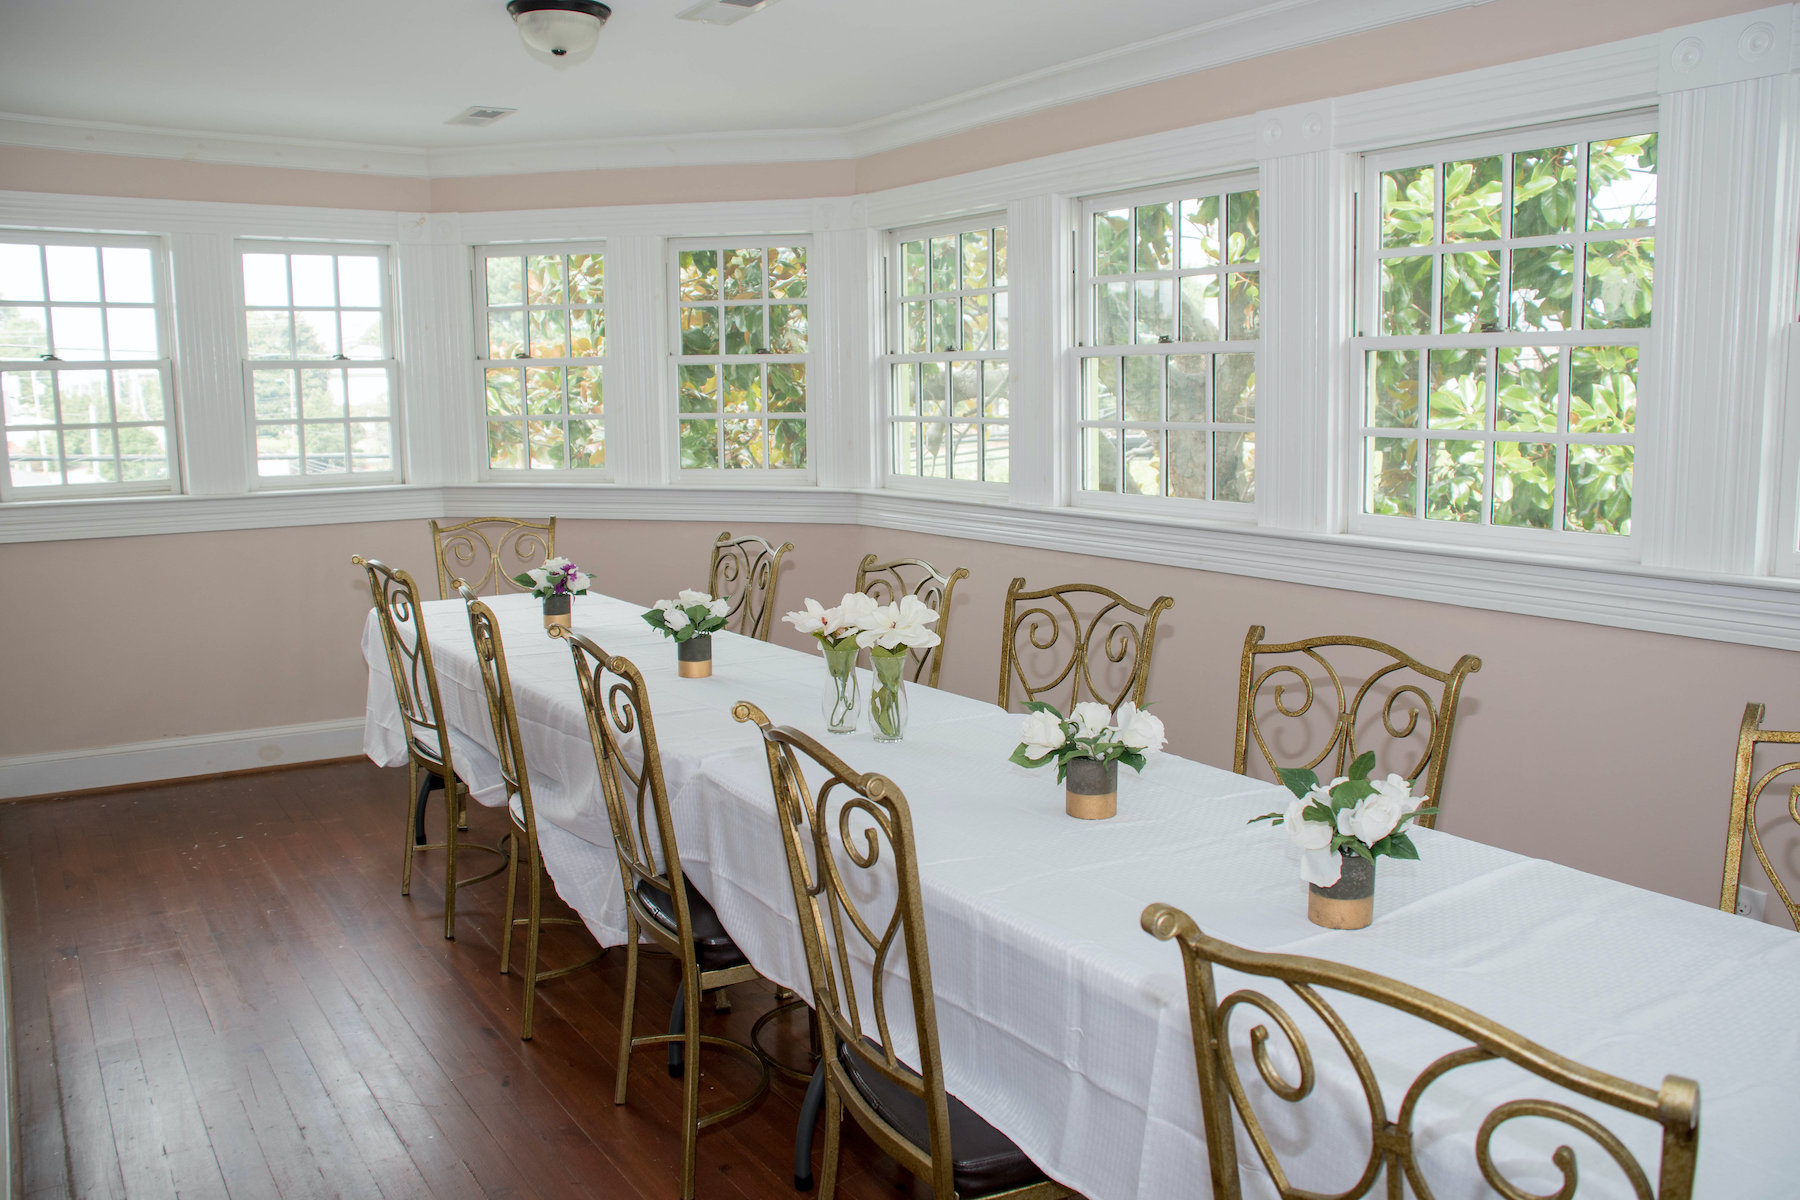 a long table with a white cloth and chairs